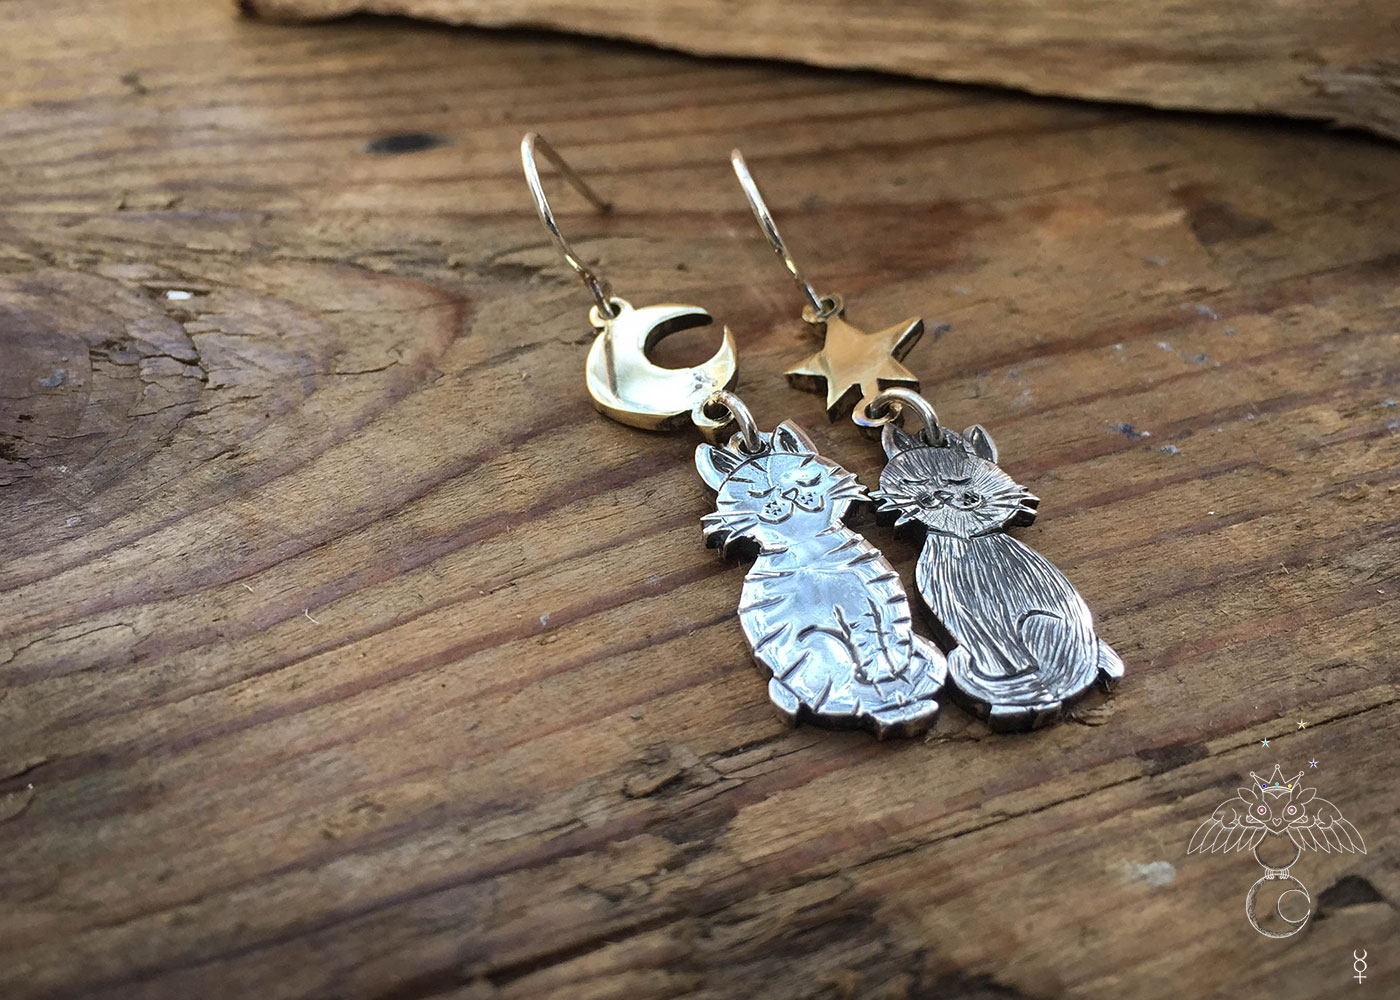 Ethical Cat earrings handcrafted and recycled silver coin cat earrings